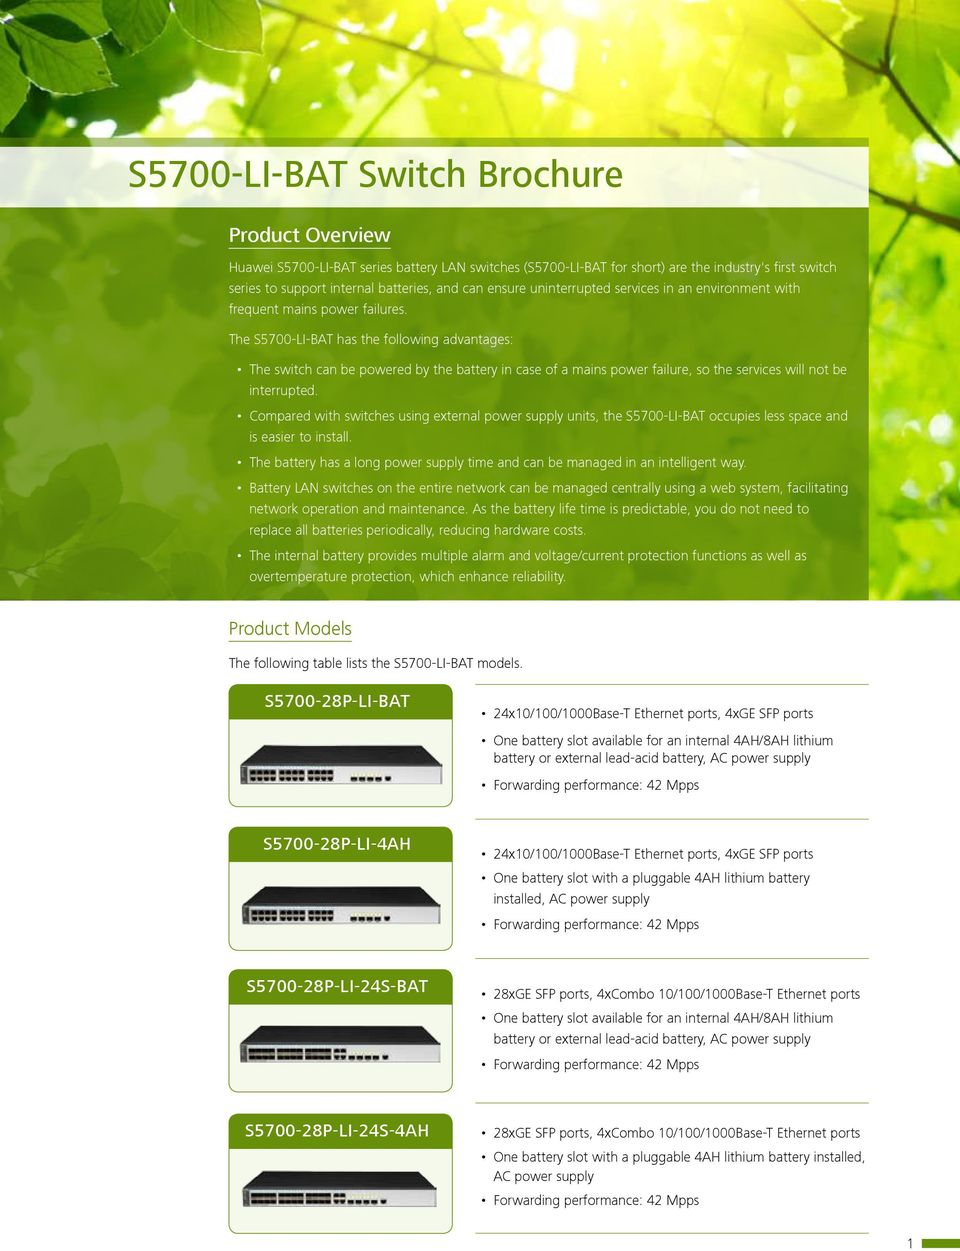 The S5700-LI-BAT has the following advantages: The switch can be powered by the battery in case of a mains power failure, so the services will not be interrupted.